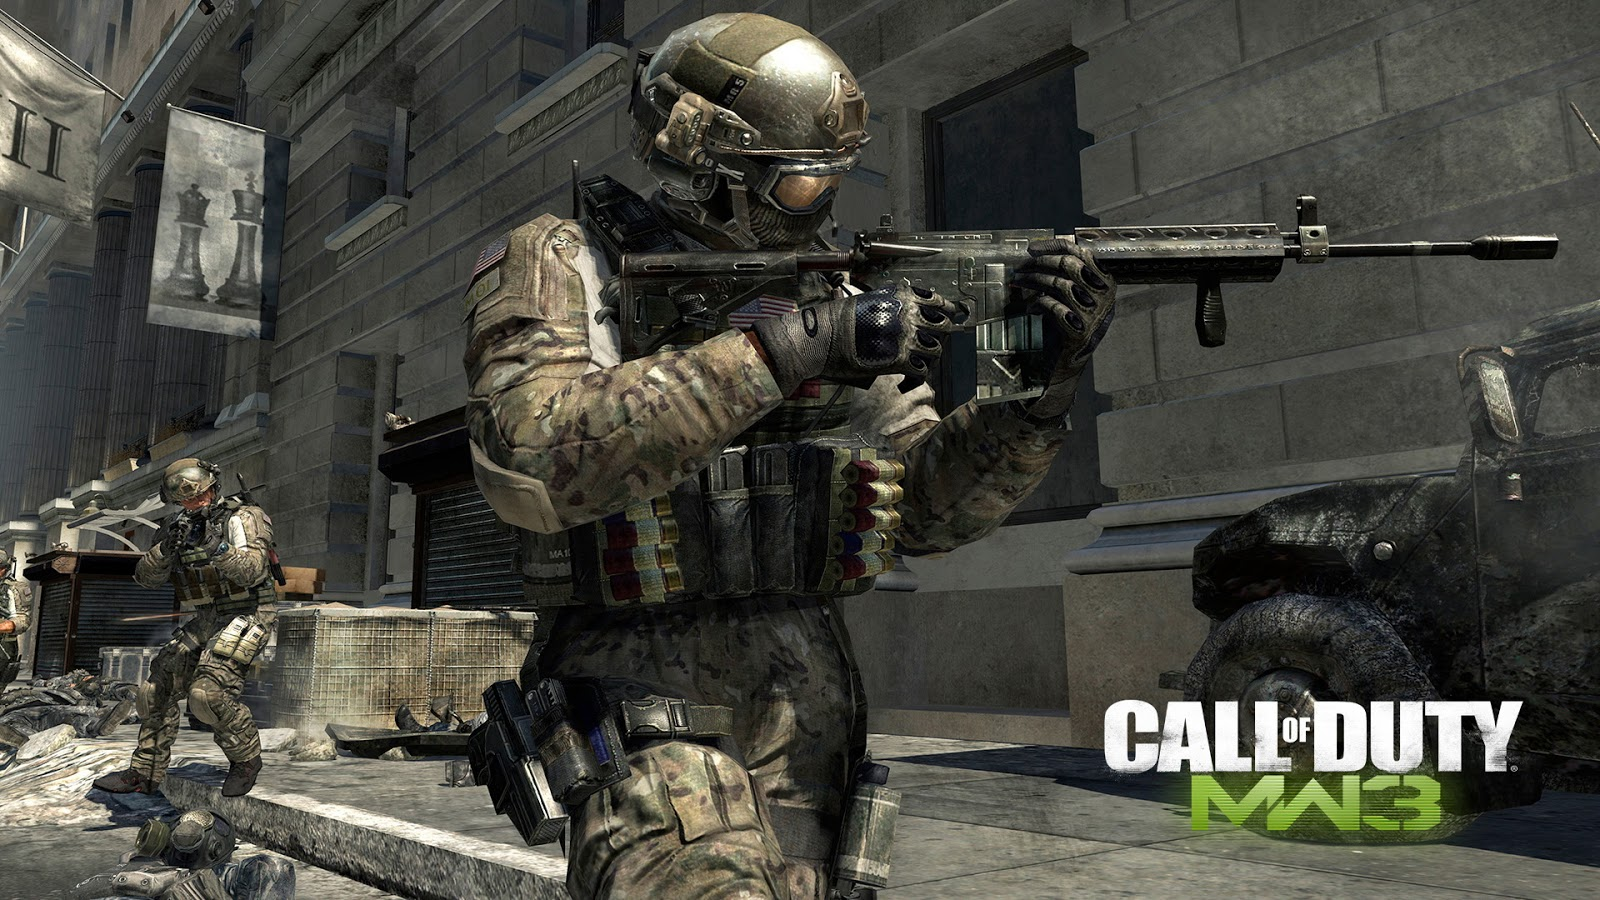 http://2.bp.blogspot.com/-NRuqUq9F9rw/UNSrs-2yiPI/AAAAAAAAAQA/5m1RNbbXn94/s1600/call+of+duty+modern+warfare+3+hd+wallpapers+(8).jpg